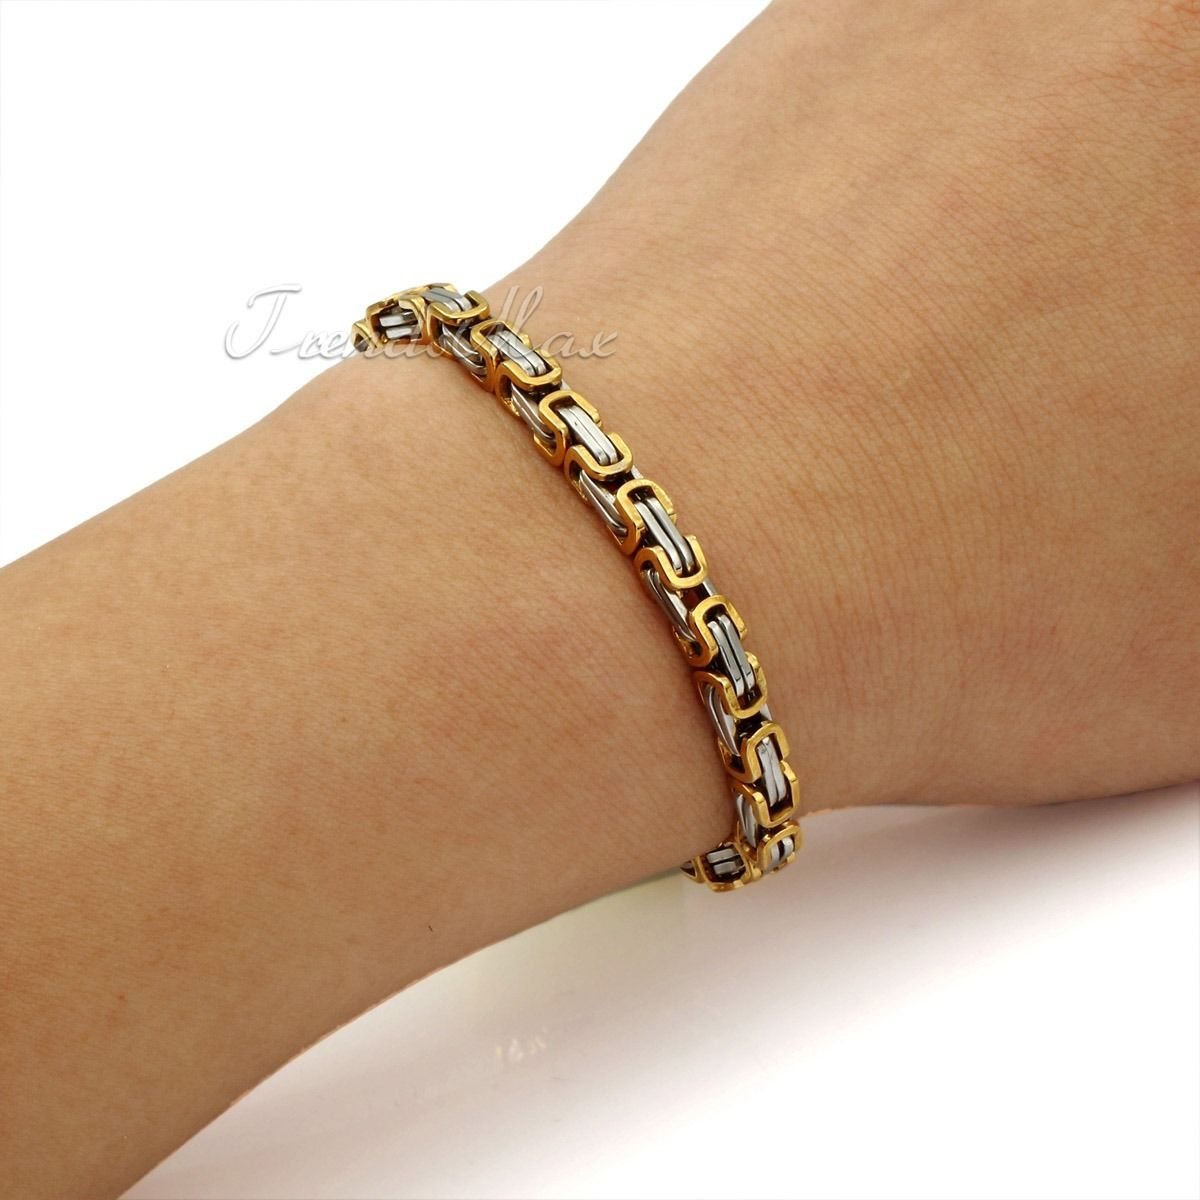 type hip iced gold silver itm yellow lab cubic bracelet white diamond zirconia simulate chain metal color row black plating stone hop main out aaa